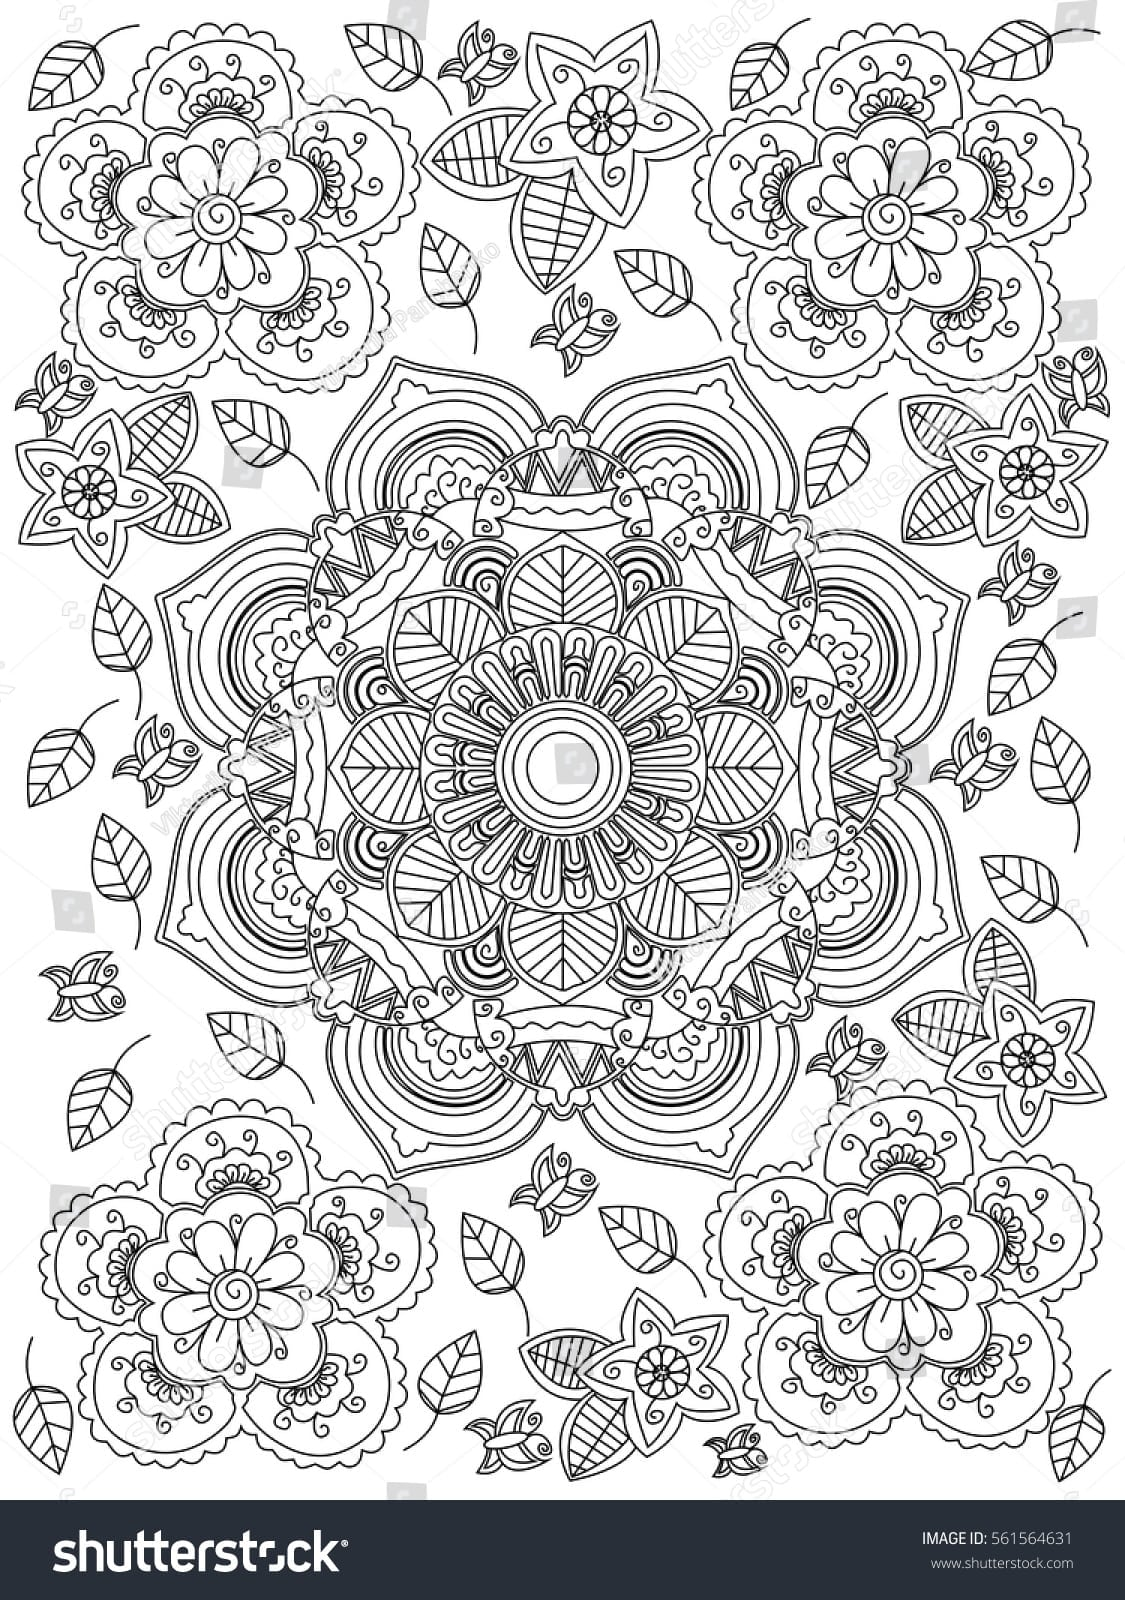 Flowers Coloring Book Page For Lovely Flower Coloring Books For